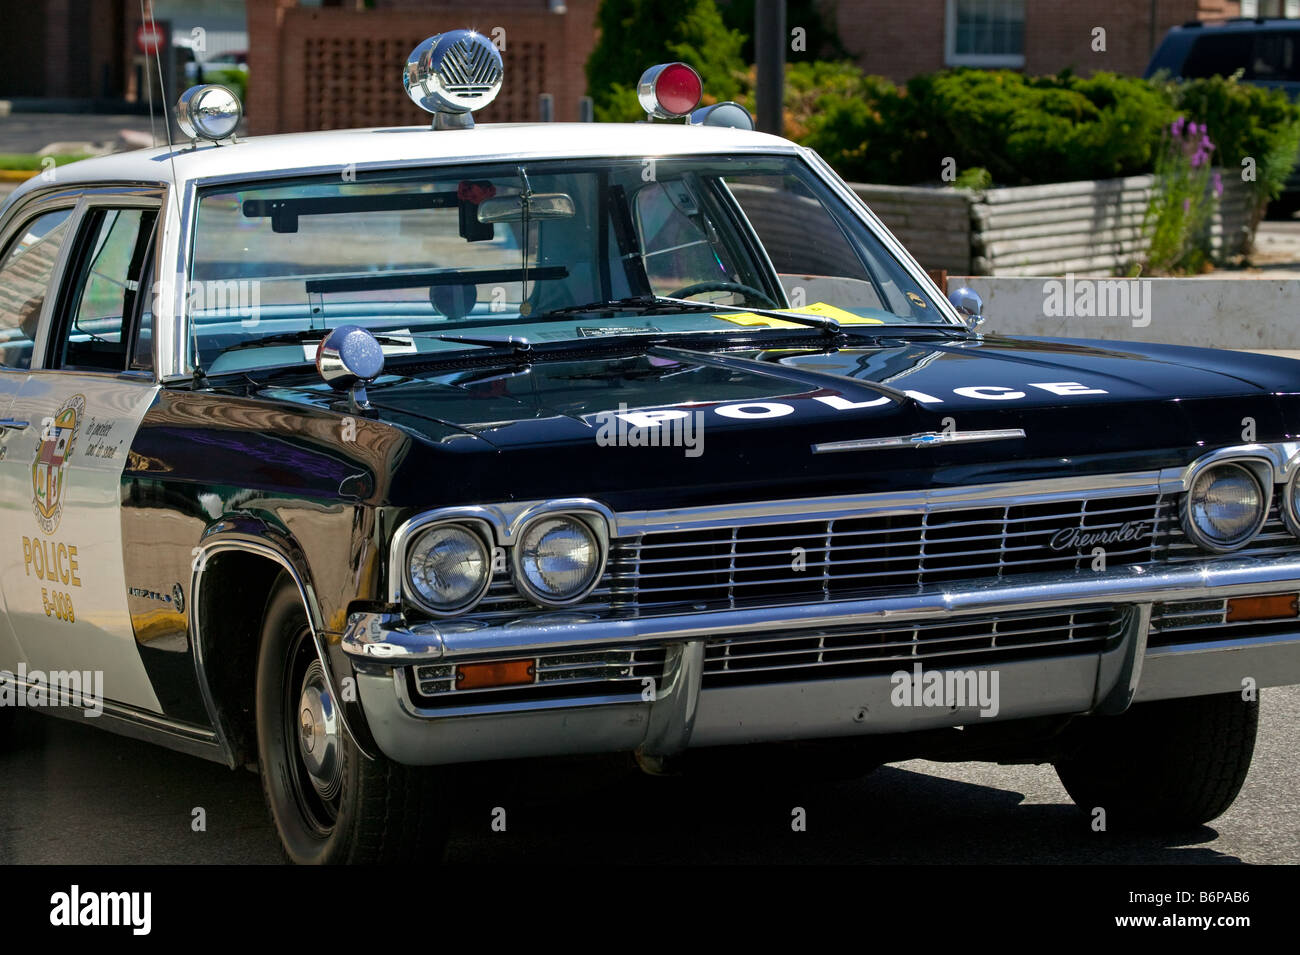 1960s police car Stock Photo: 21389402 - Alamy